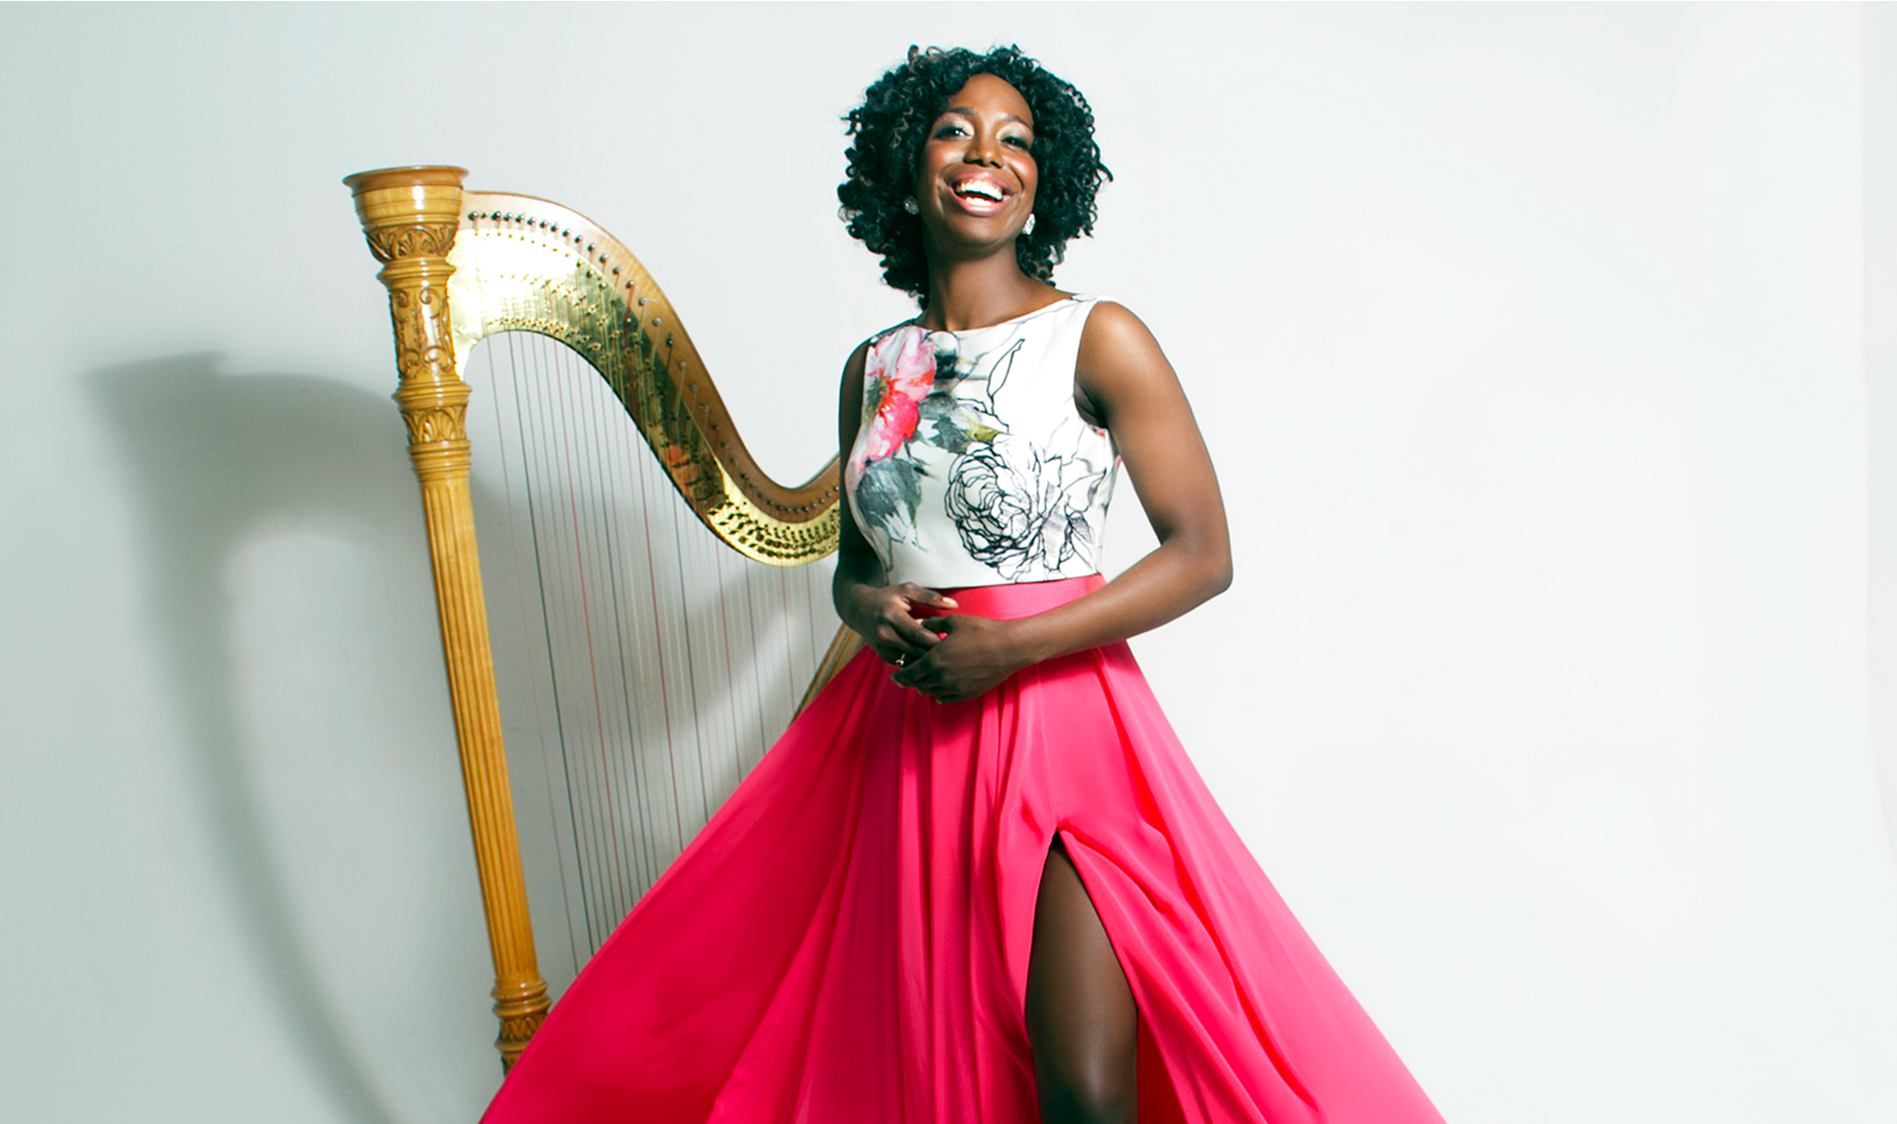 CHICAGO TRIBUNE: Brandee Younger Included in 5 Must-See Concerts This Week